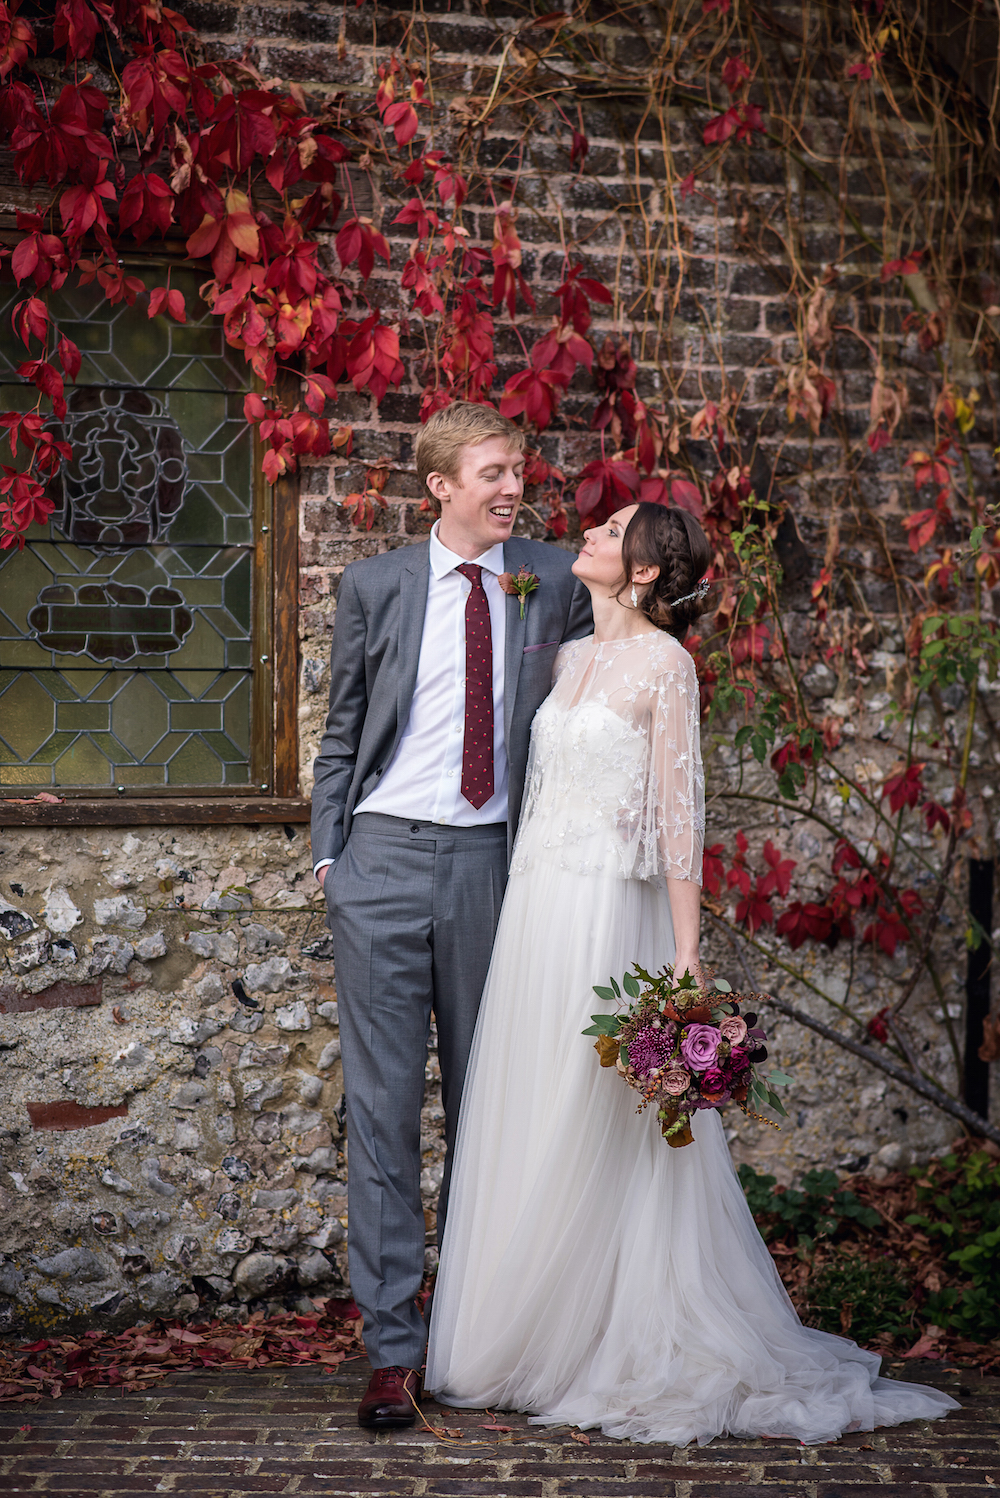 October wedding, autumn foliage